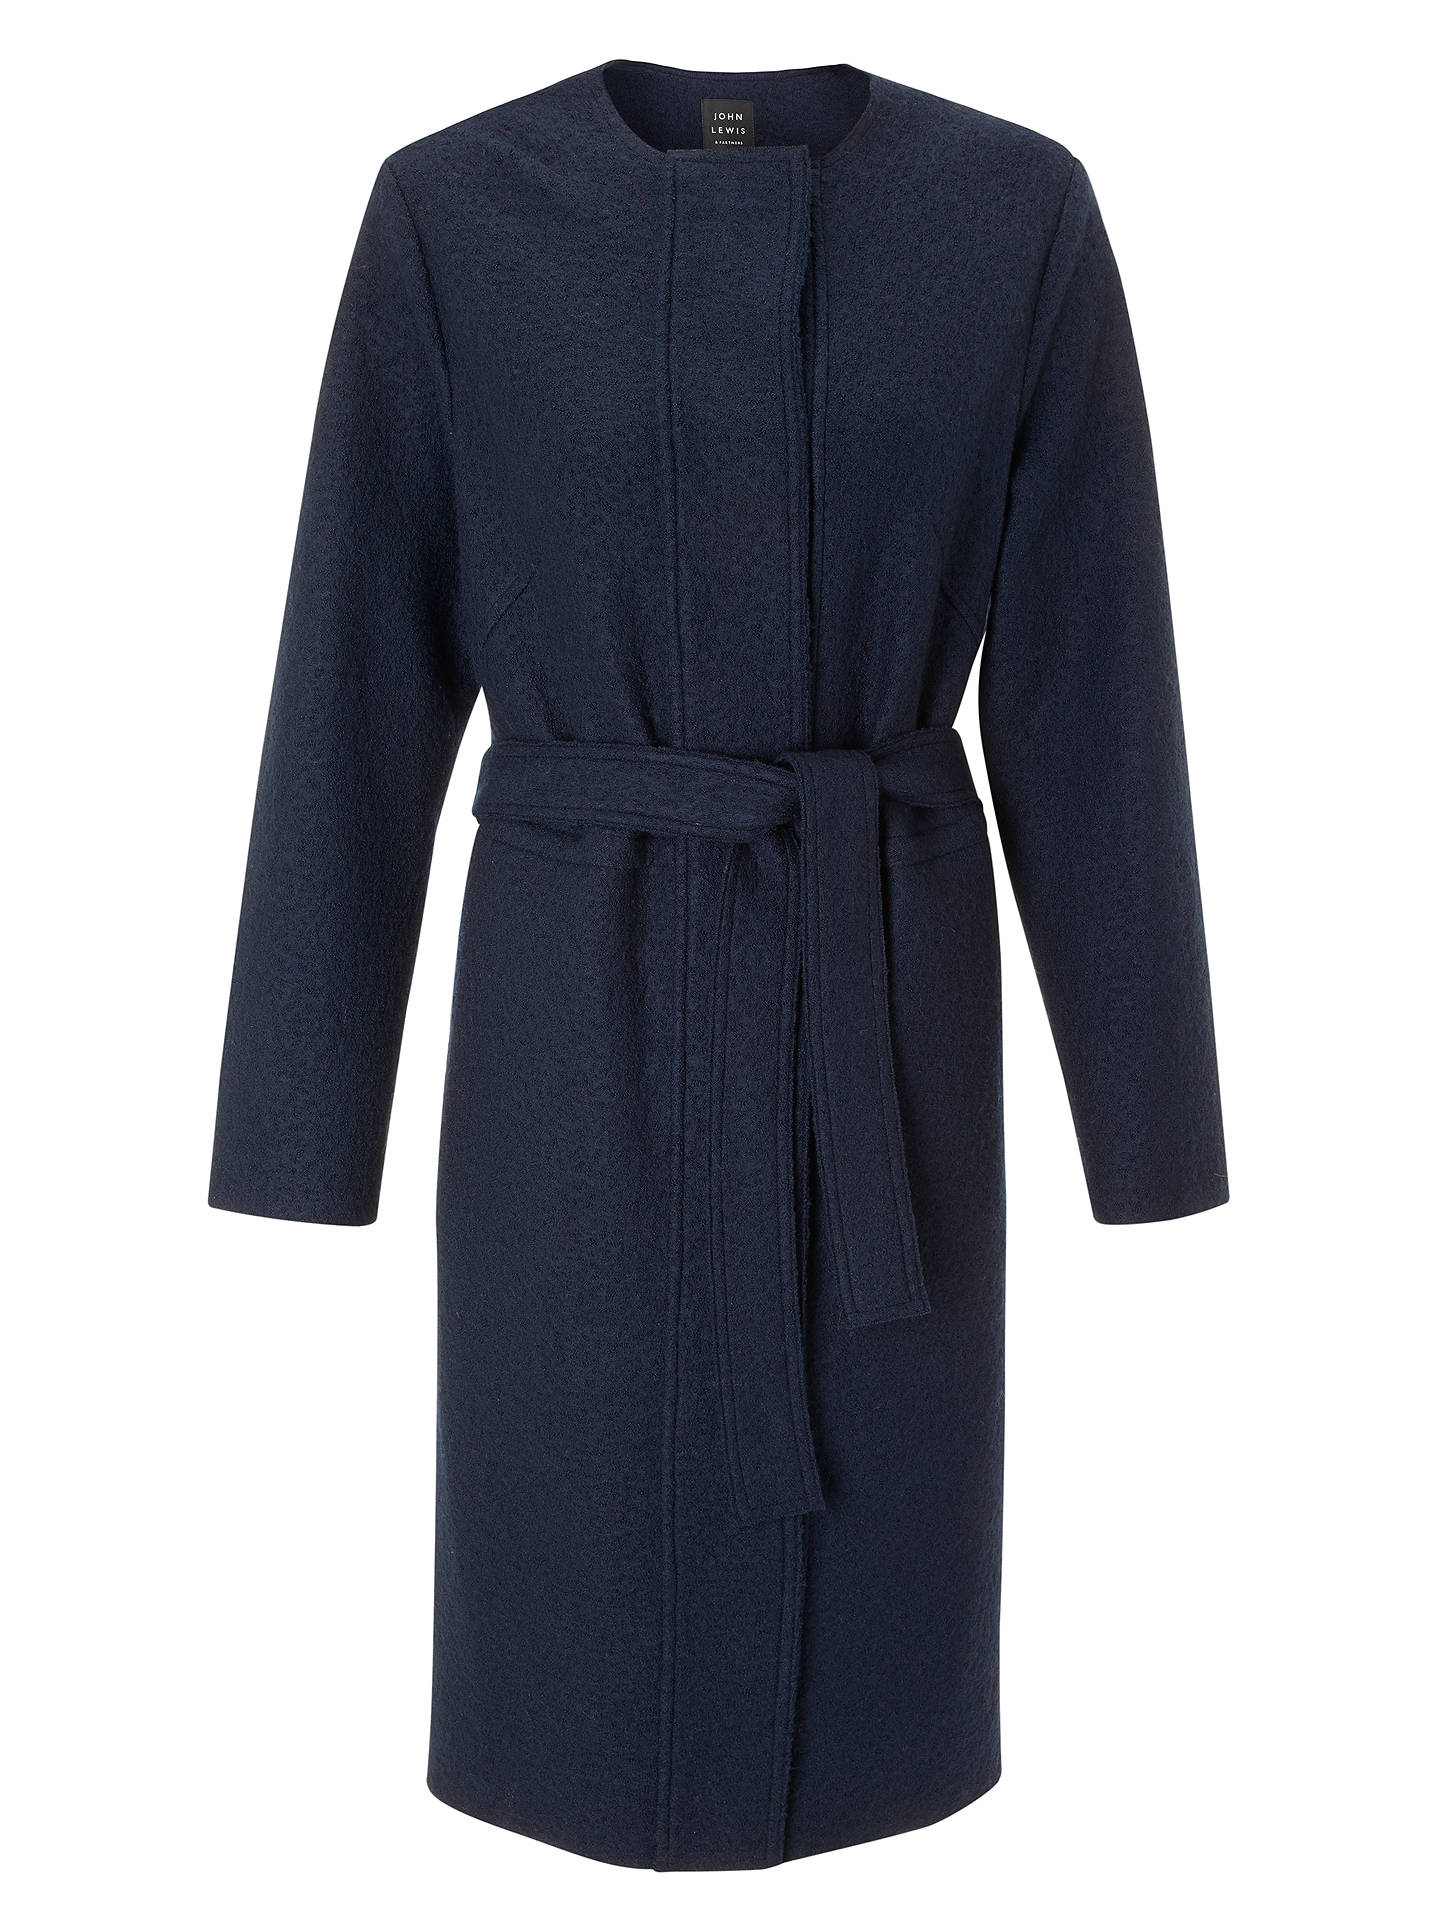 BuyJohn Lewis & Partners Wool Blend Coatigan, Navy, S Online at johnlewis.com